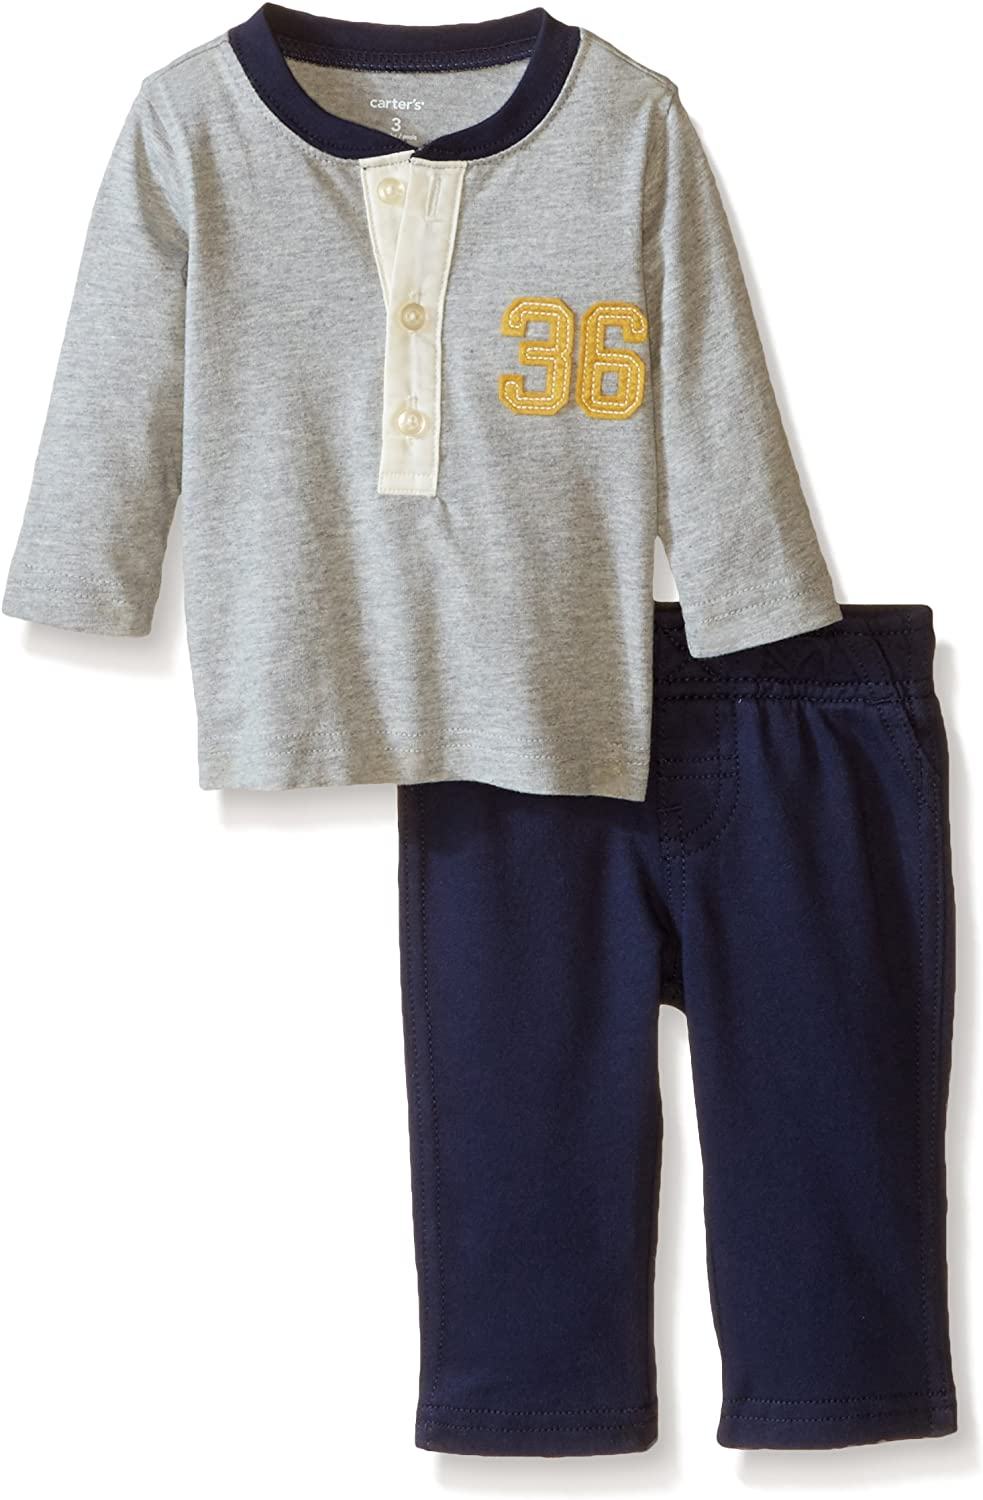 Carter's Baby Boys' 2 Piece Pant Set (Baby) - Heather - 9 Months